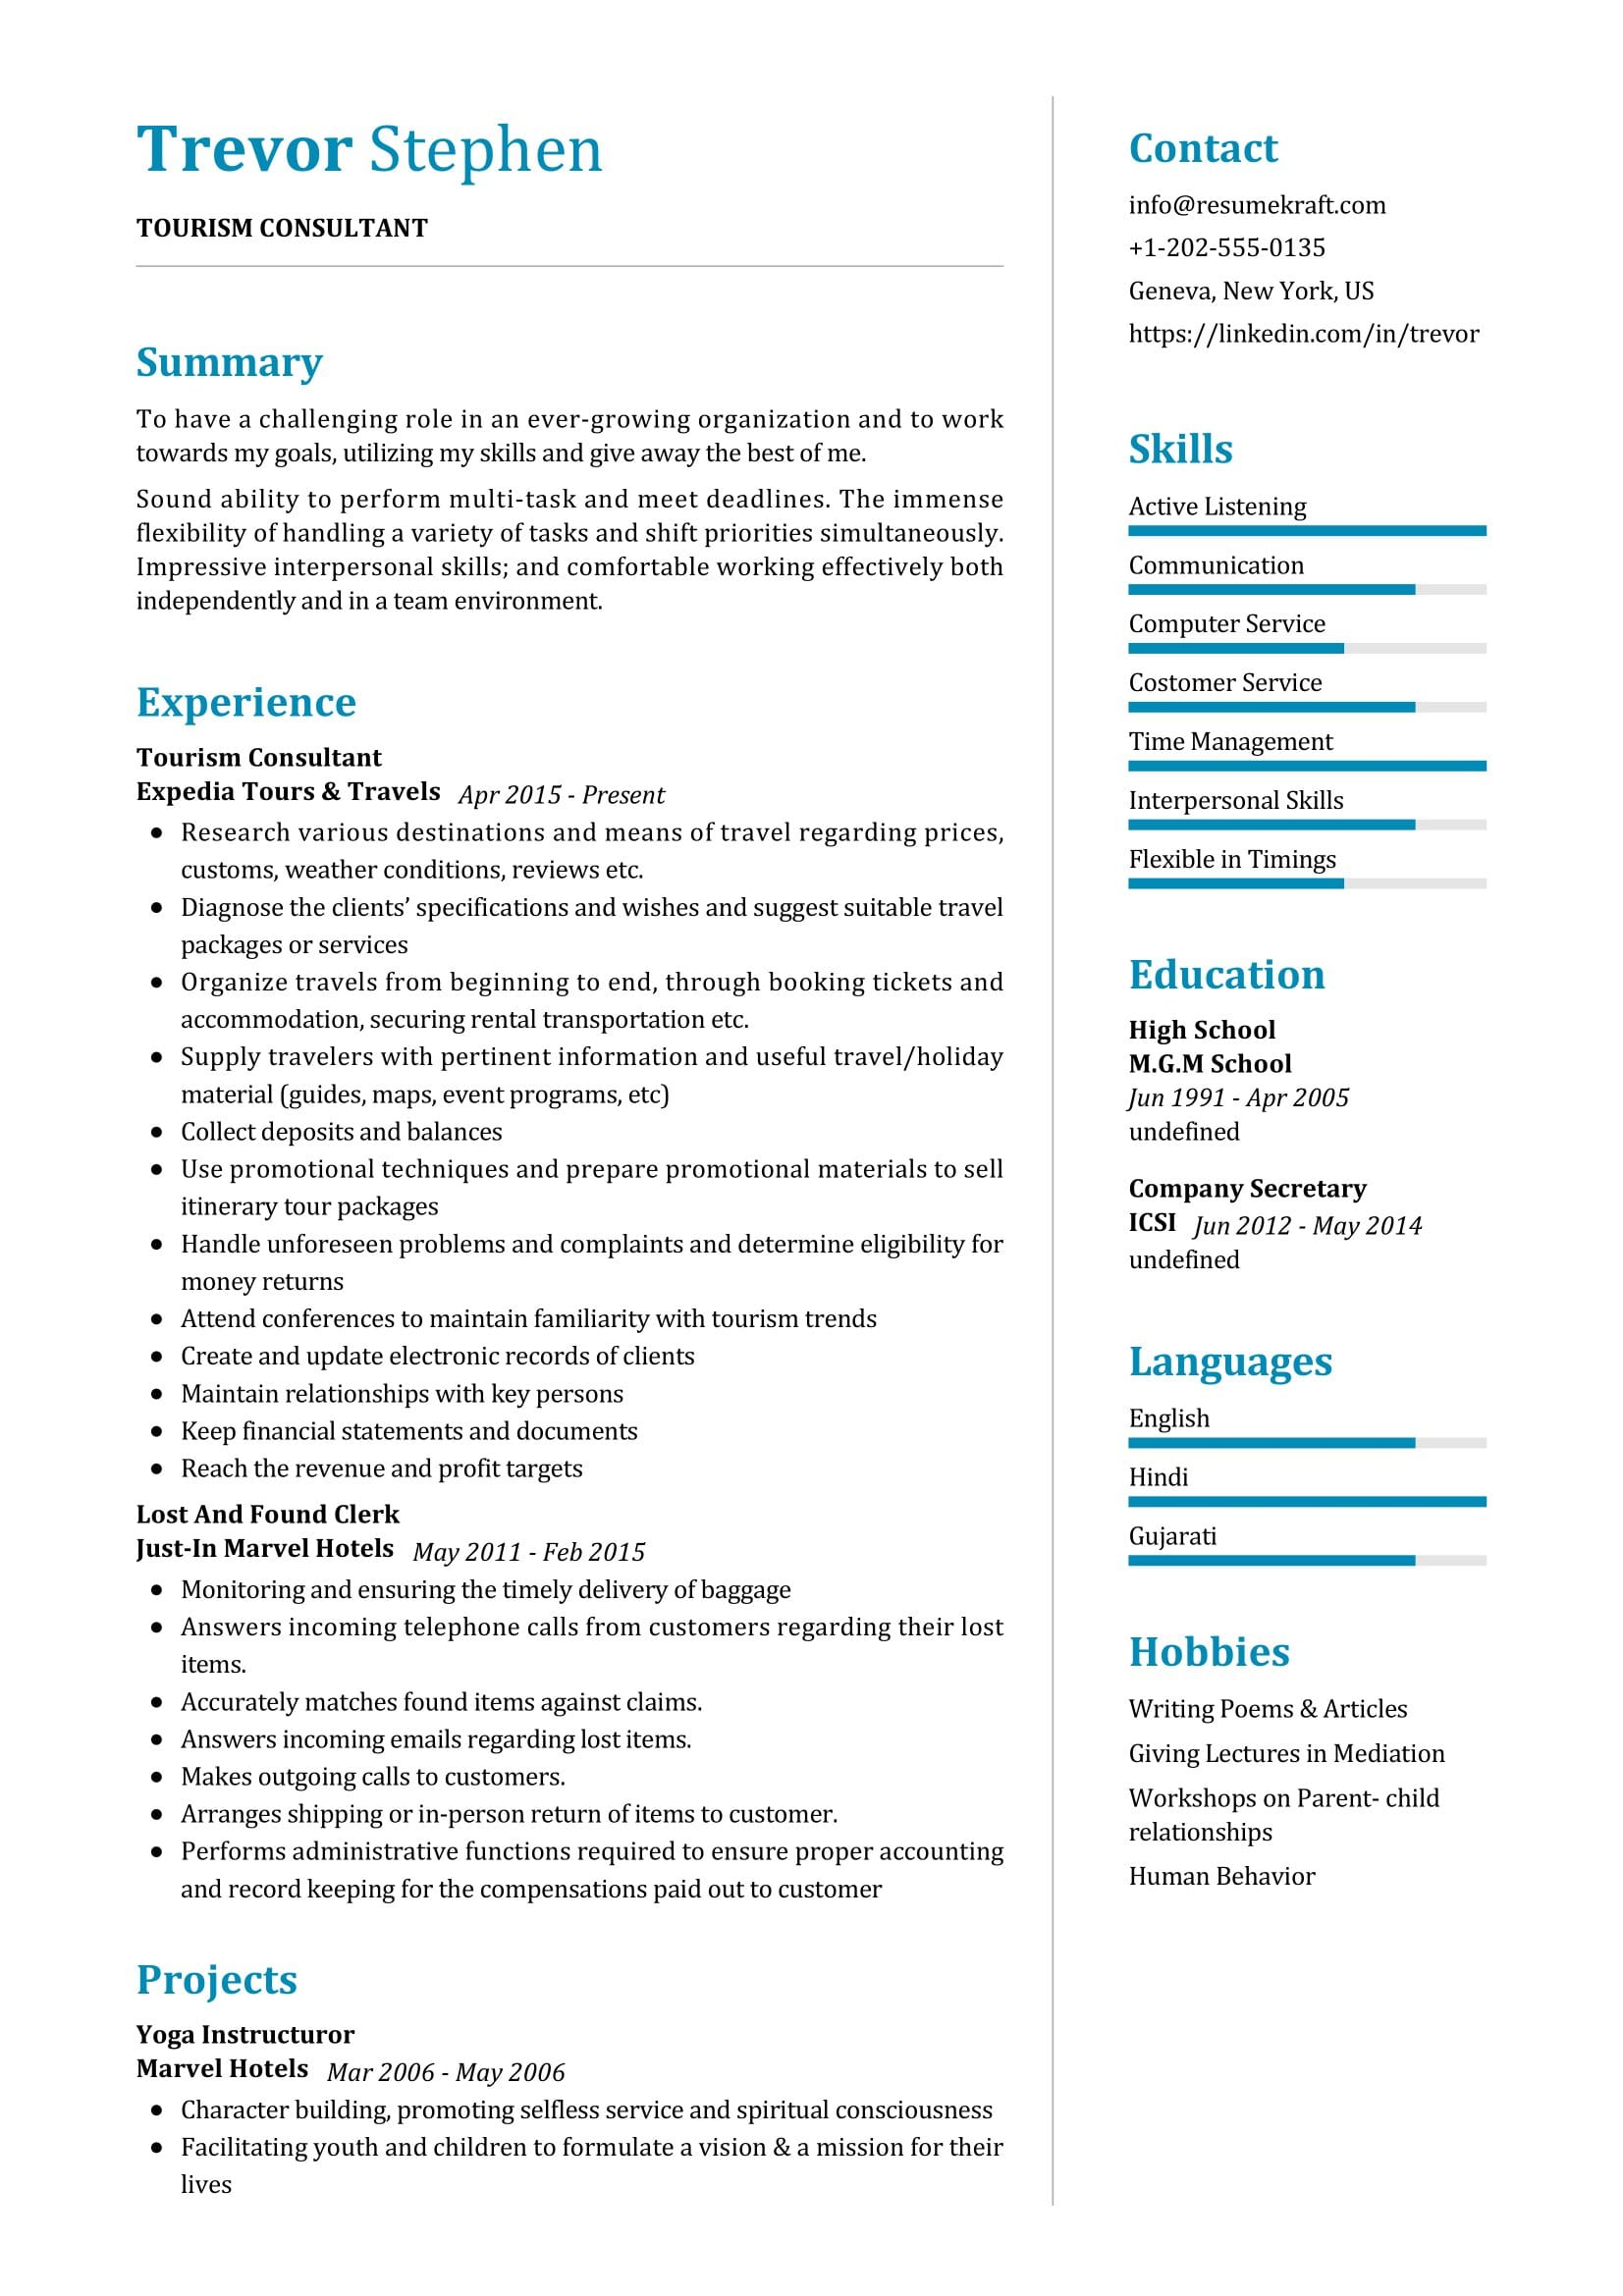 Resume for tourism management knight essay contests